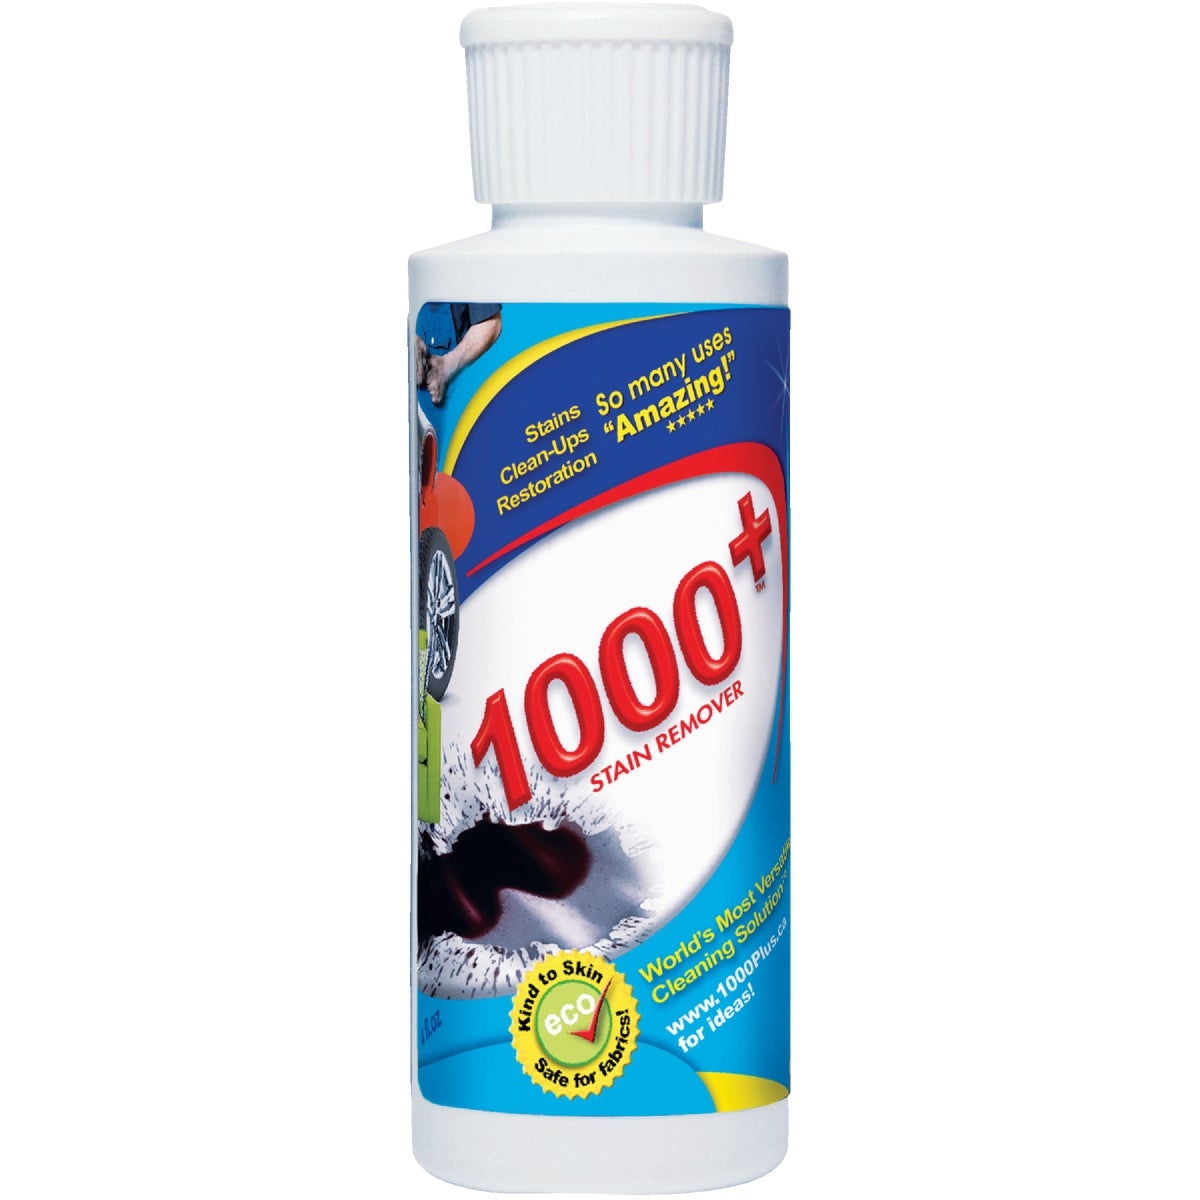 1000+ Stain Remover